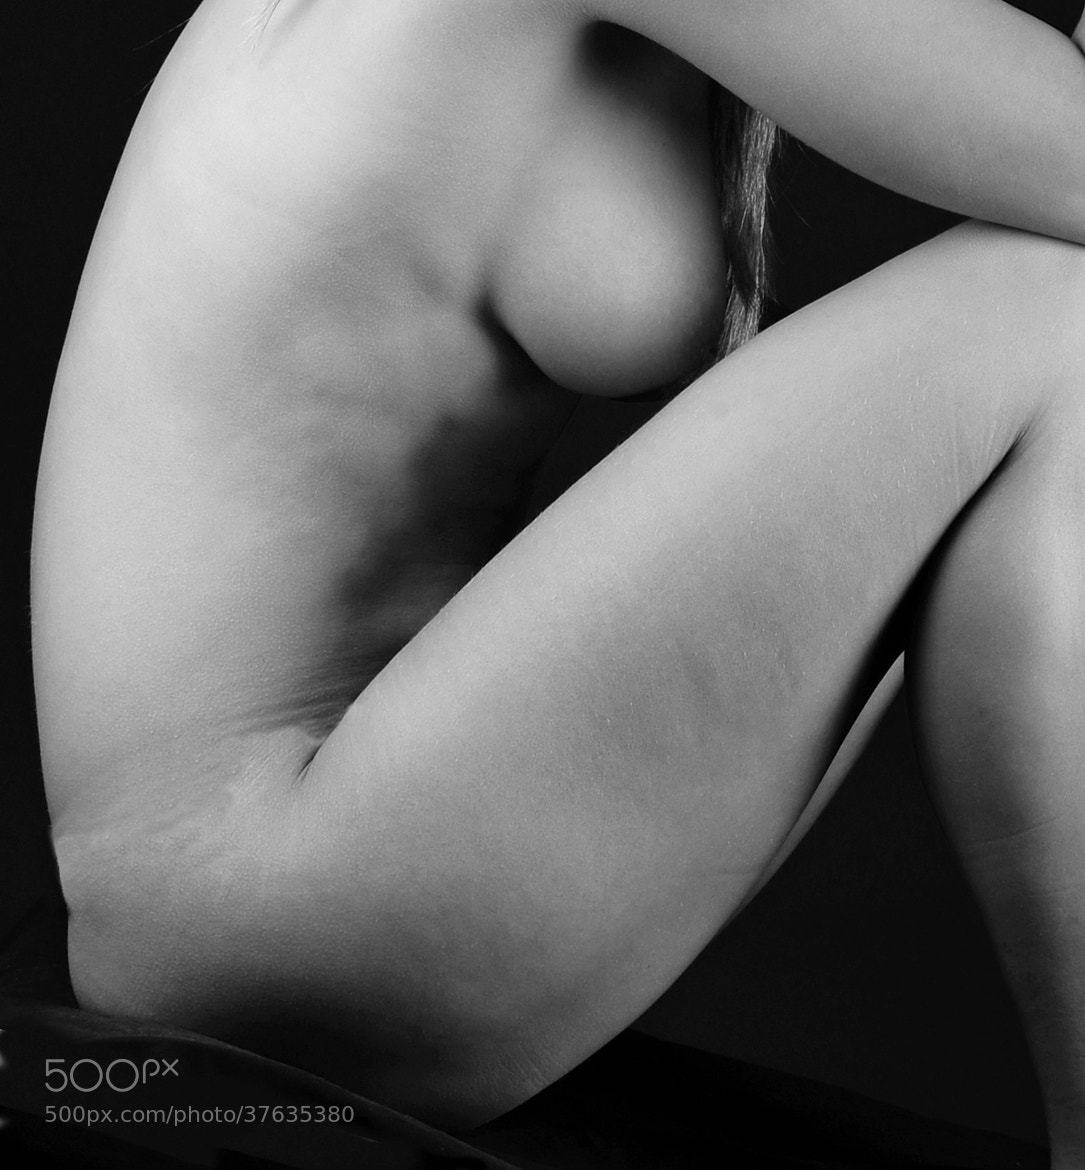 Photograph Sitting naked by Snanders  on 500px